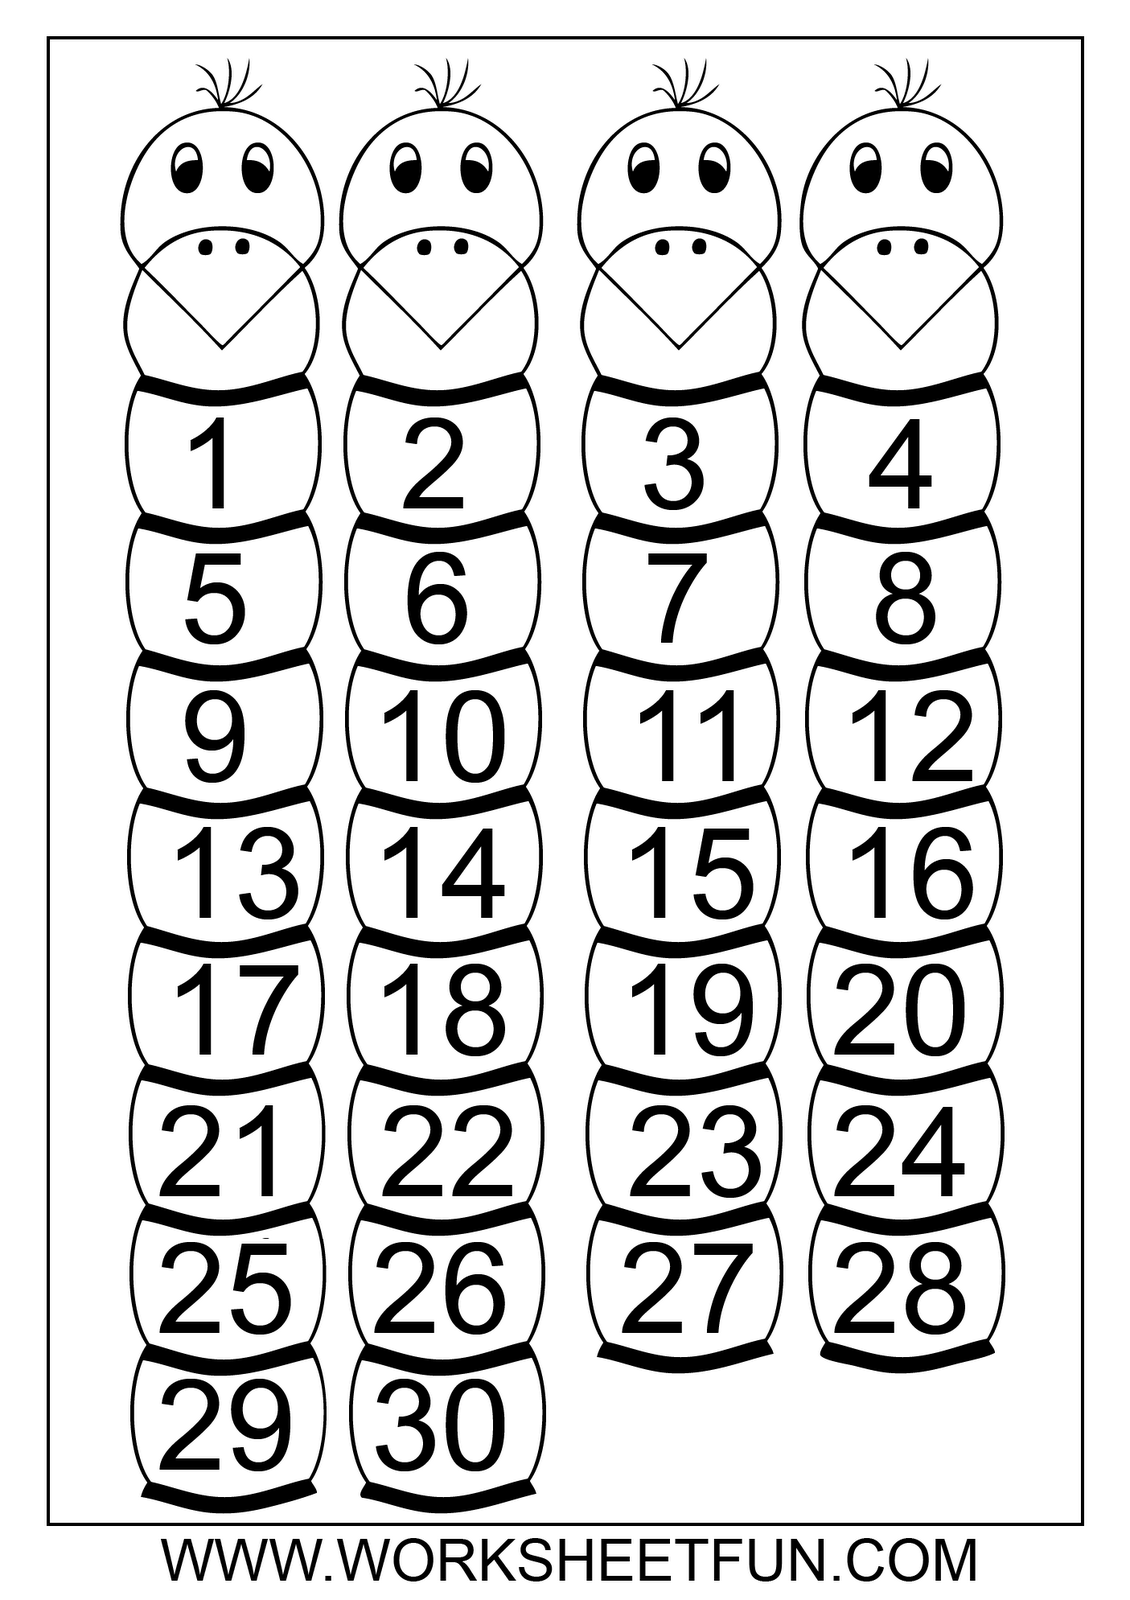 14 Best Images Of Number Recognition Worksheets 1 30